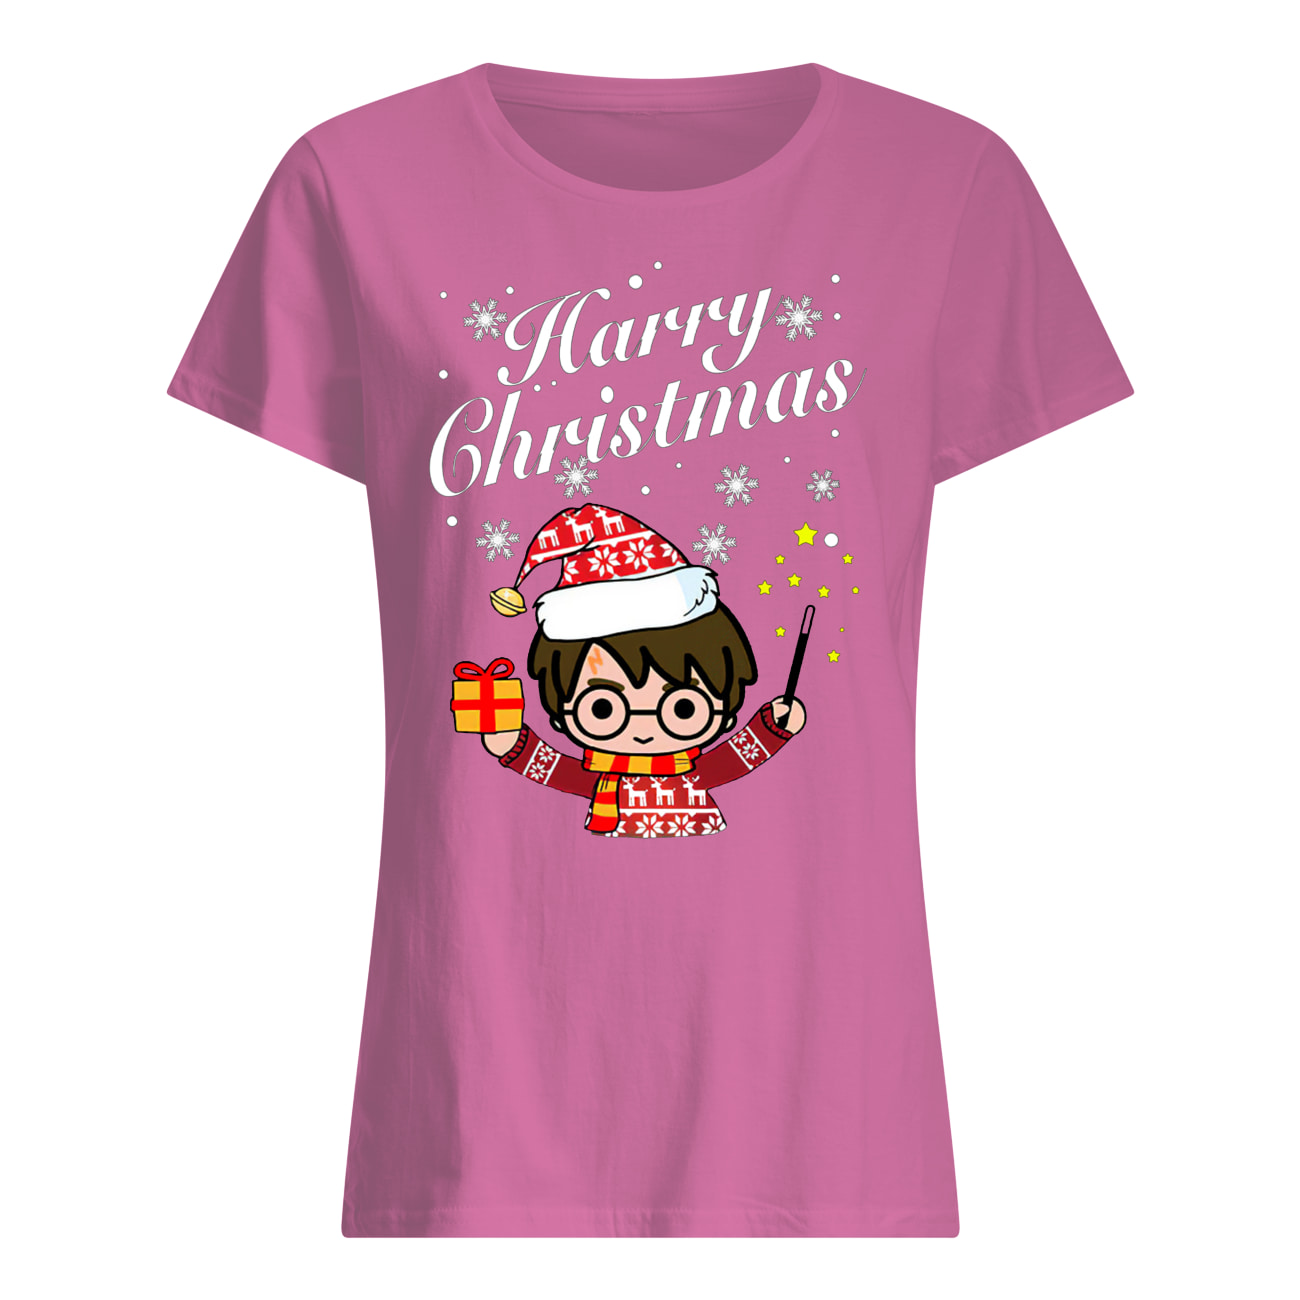 Merry christmas harry potter harry christmas women's shirt